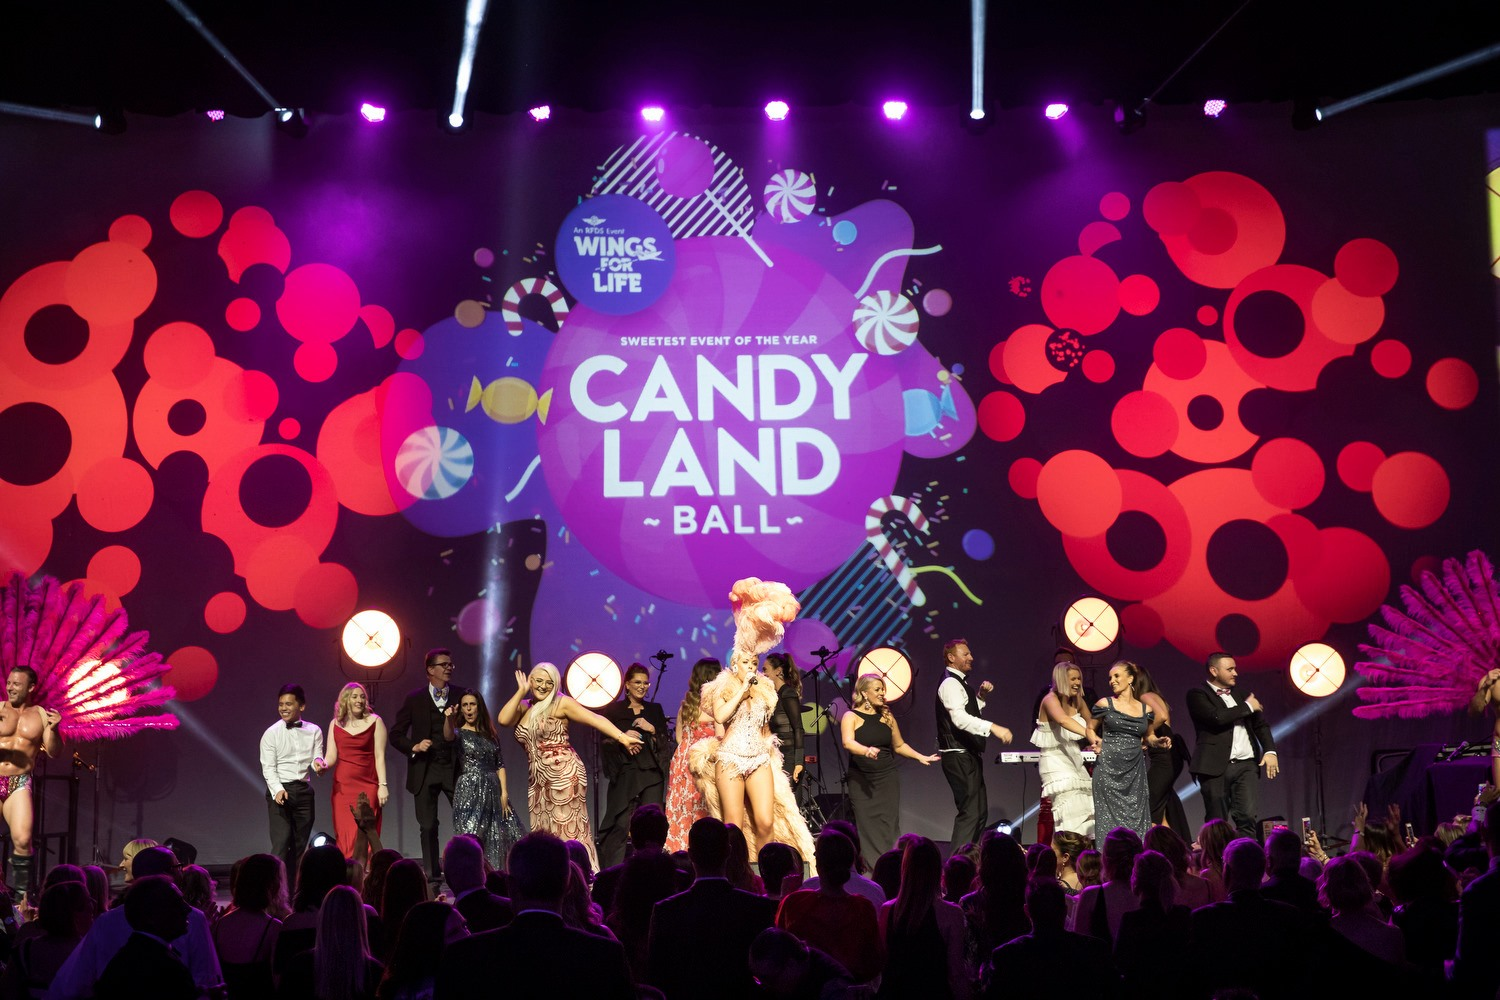 RFDS_WFL CANDYLAND Ball_2019 (22).jpg